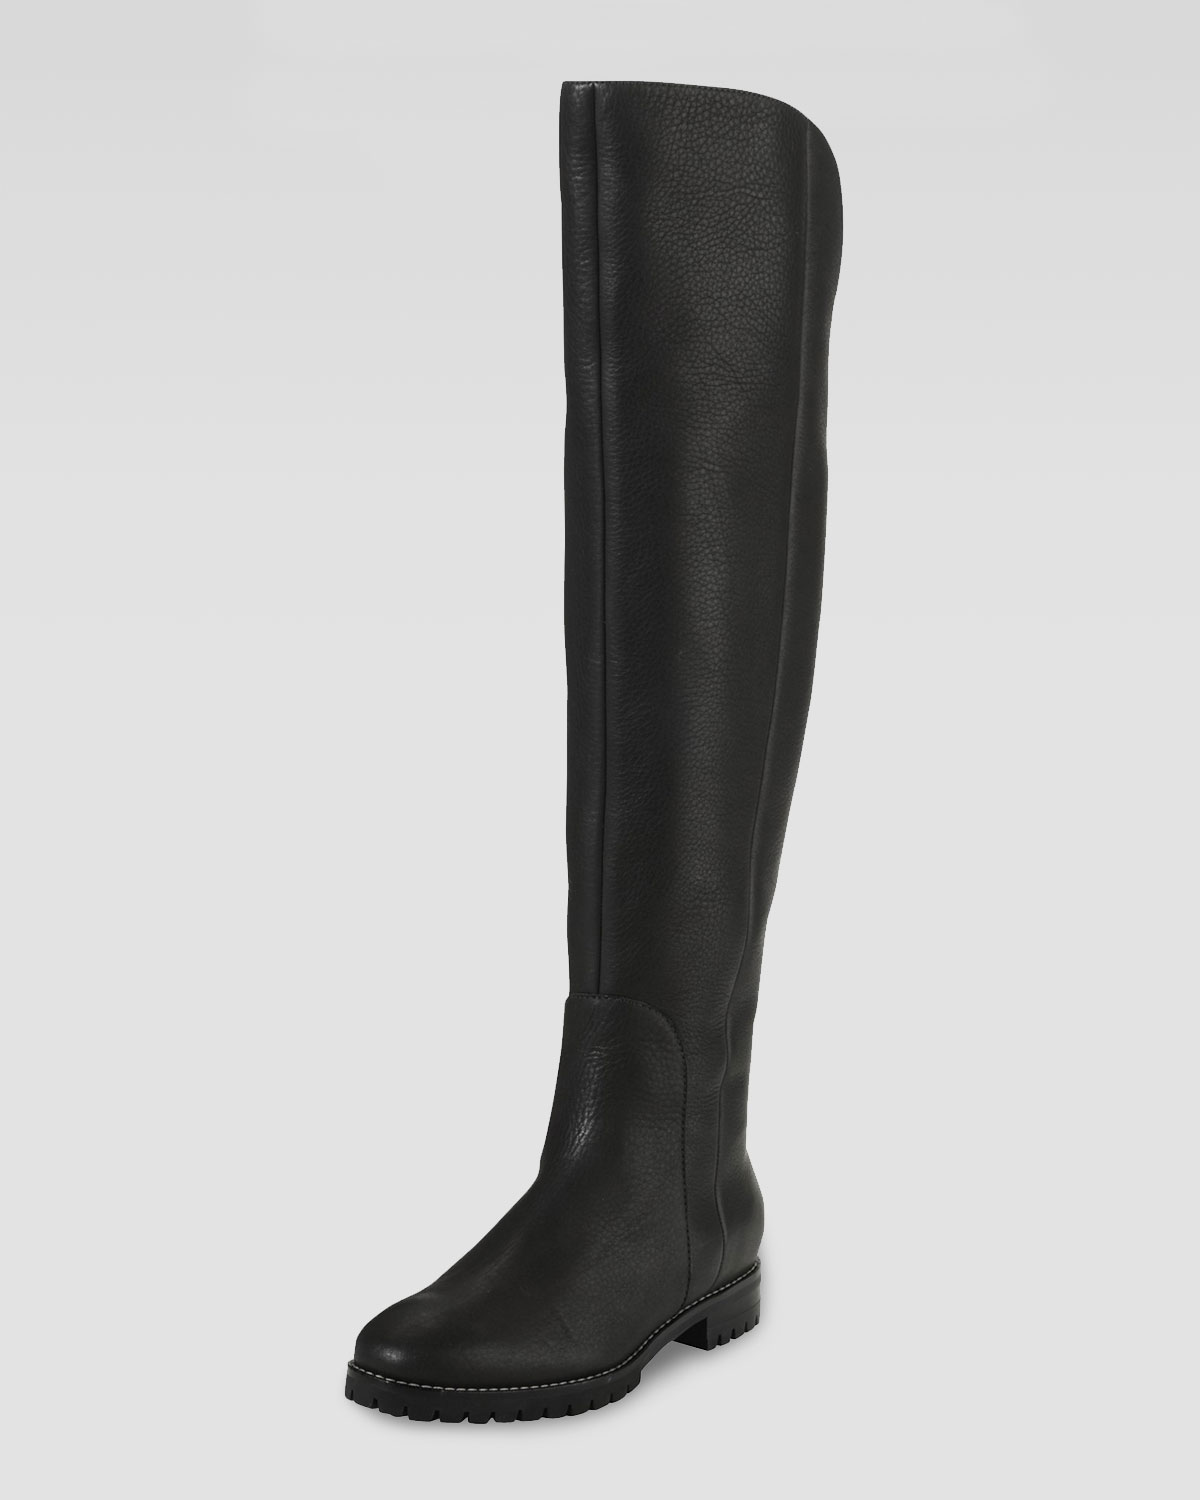 075a65a7b4c Cole haan Estella Waterproof Over the knee Boot in Black